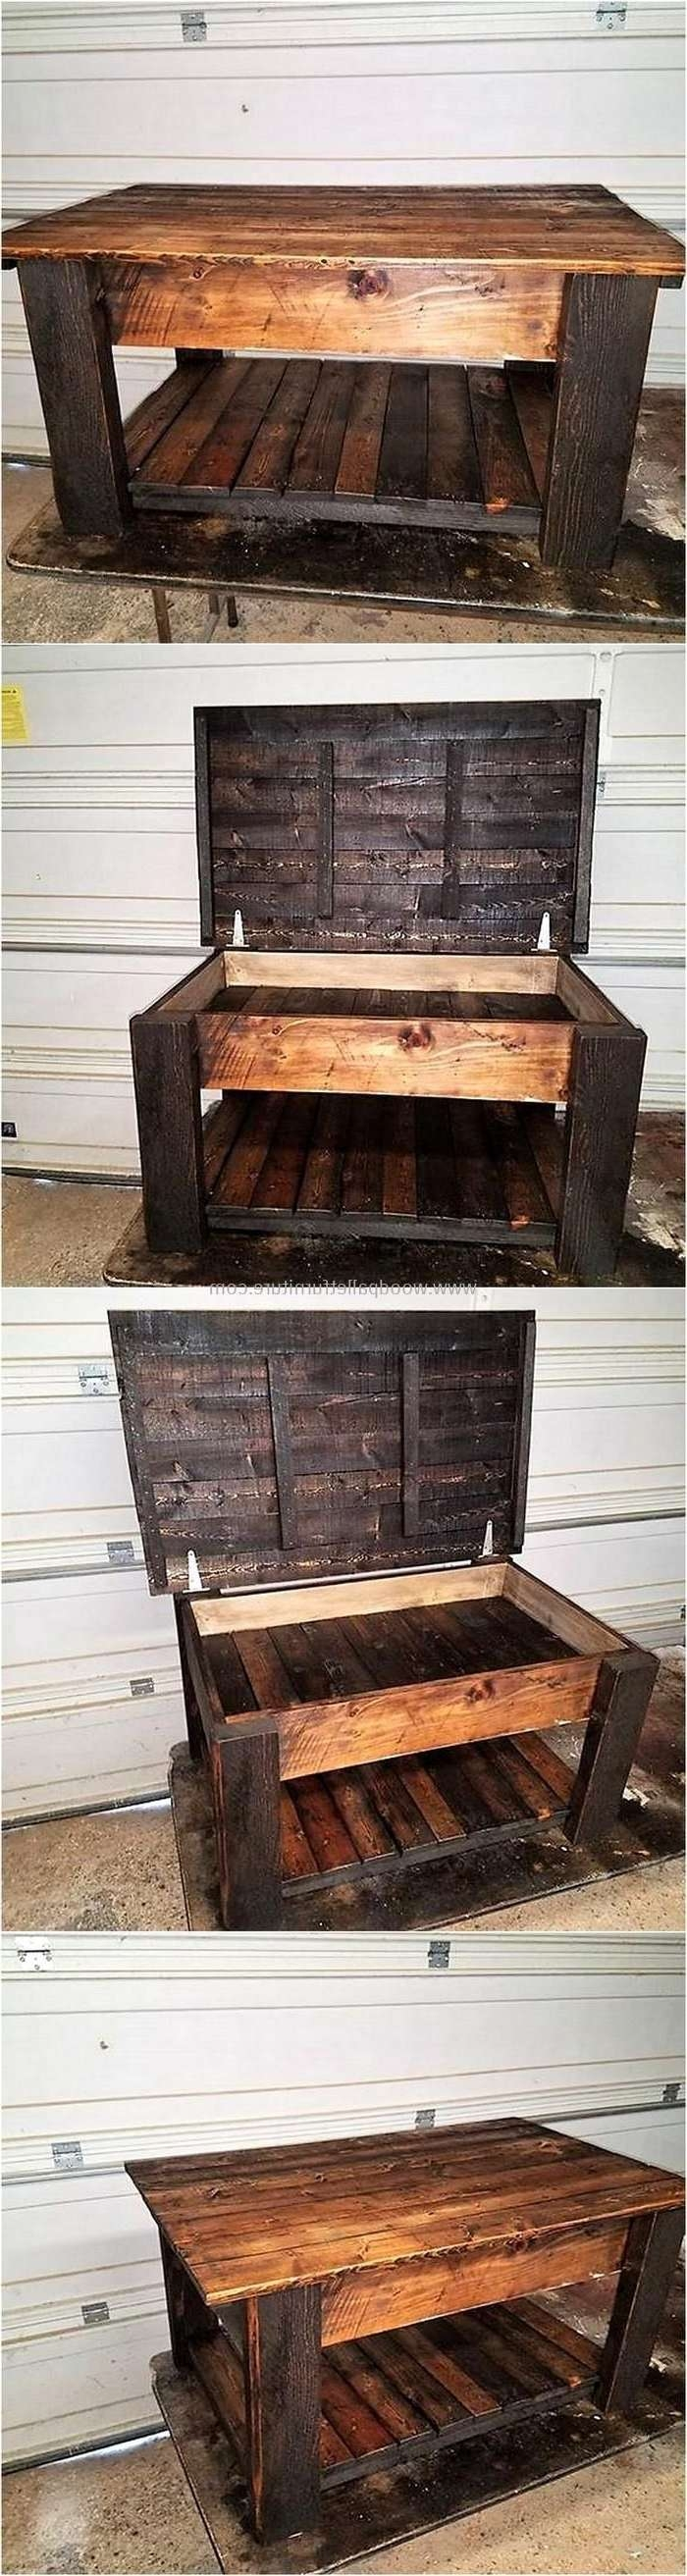 Well Known Coffee Tables With Basket Storage Underneath In Best 25+ Coffee Table With Storage Ideas On Pinterest (View 18 of 20)